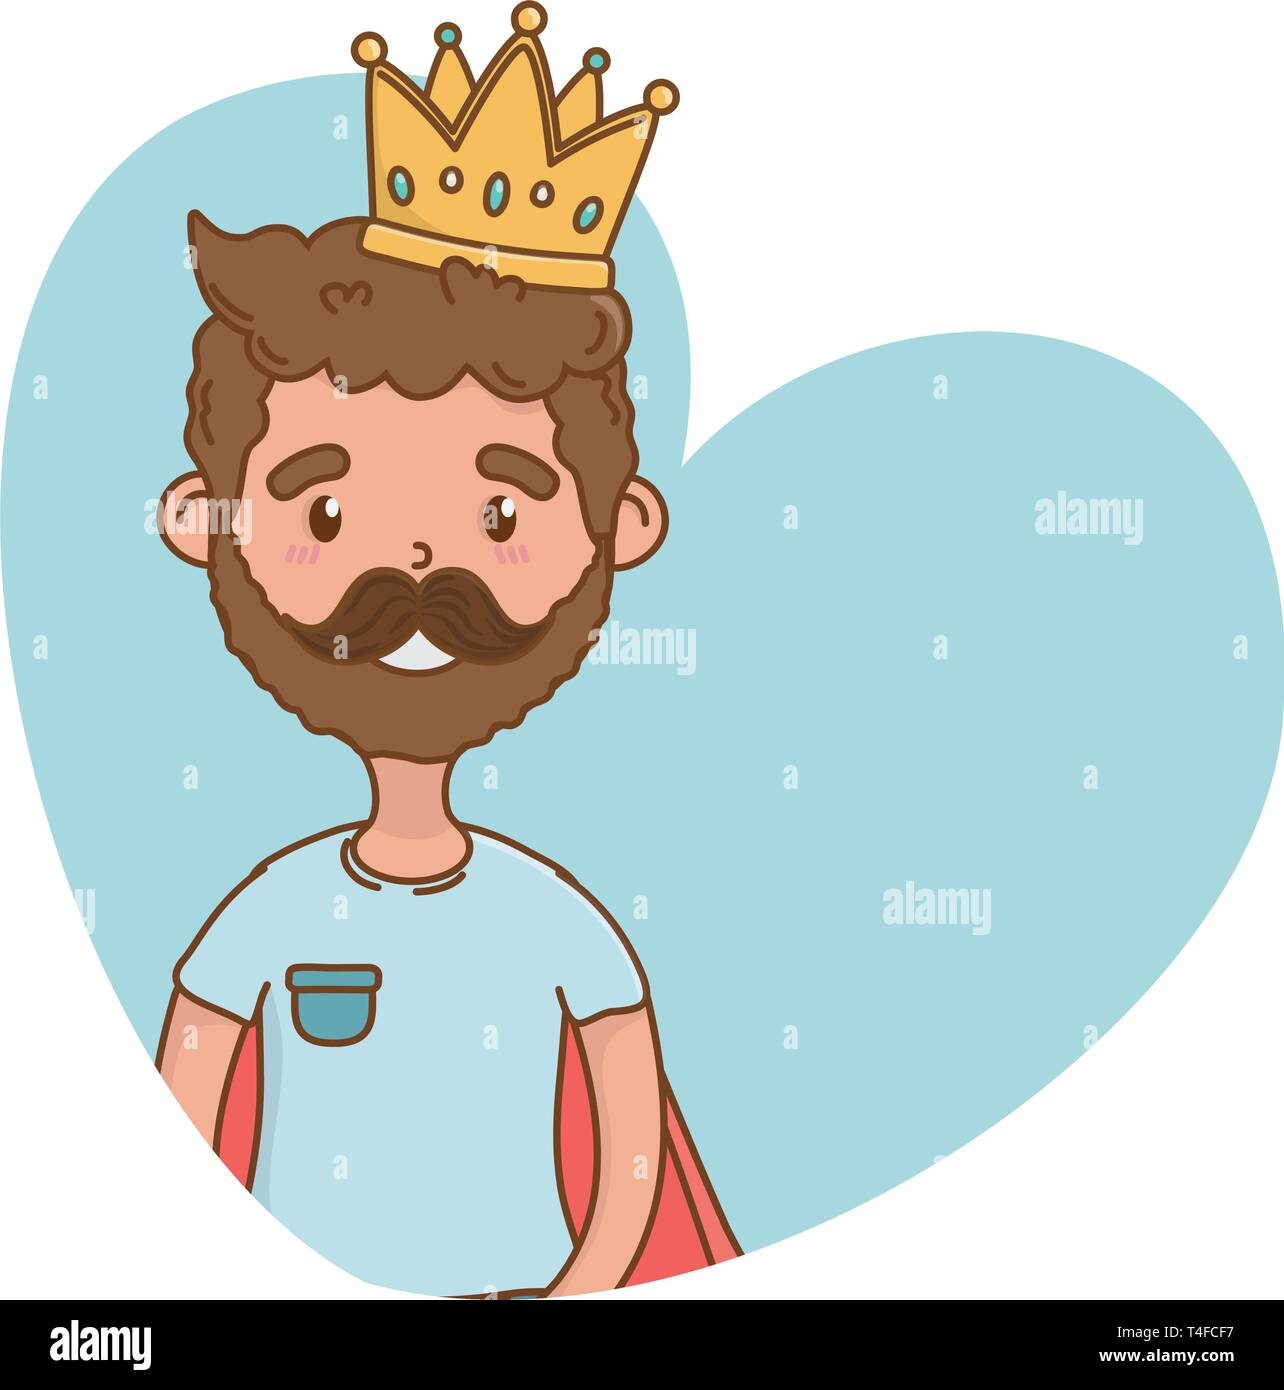 Man With Crown Icon Cartoon Beard Vector Illustration Graphic Design Stock Vector Image Art Alamy Happy fathers day, man with crown and coffee cup cartoon vector illustration. alamy